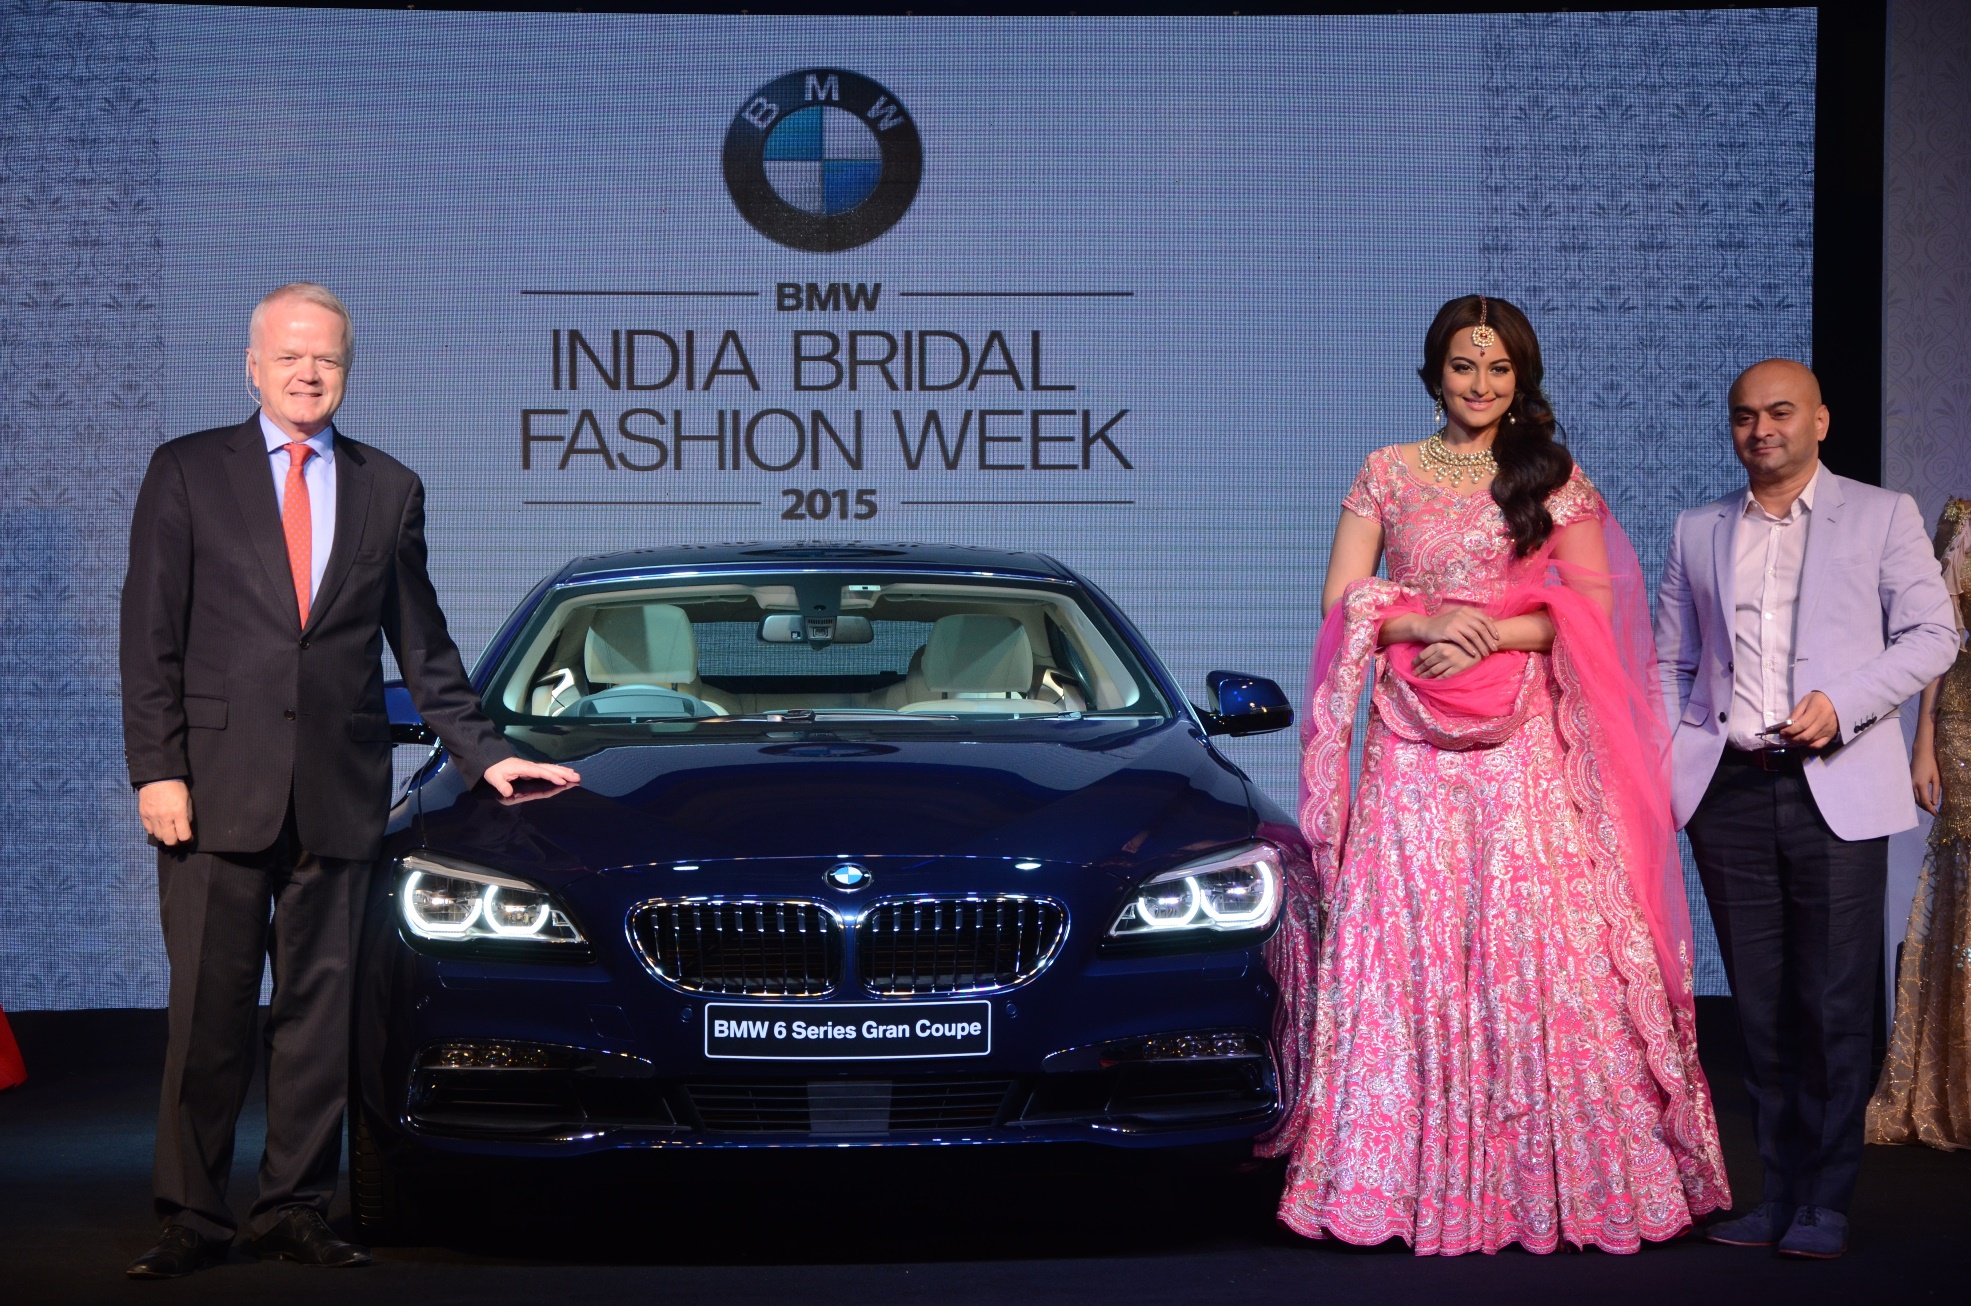 Left - Mr. Philipp von Sahr, Middle - Sonakshi Sinha, Right - Mr. Vijay Singh at the BMW IBFW announcement press conference